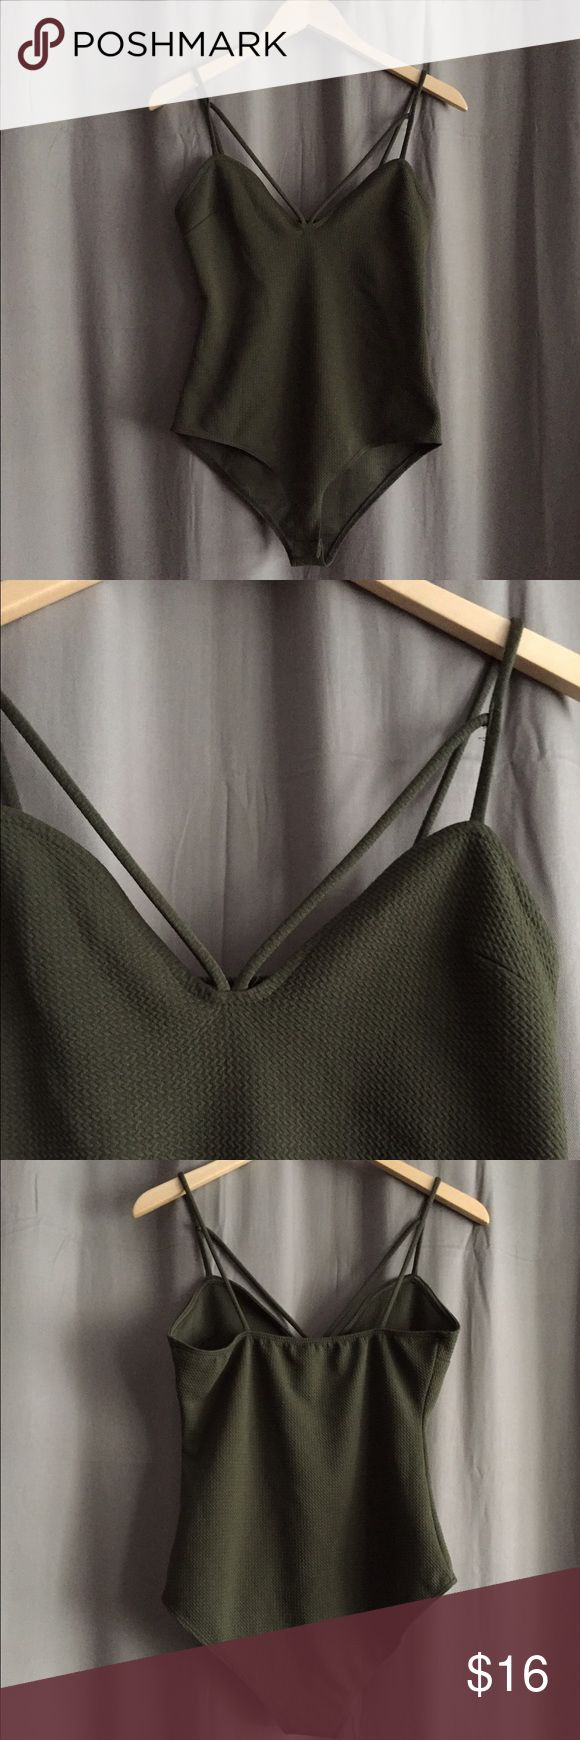 Olive green bodysuit Olive green bodysuit with double strap. Waffle texture and clasp closure. Never worn, only tried on. Size medium Charlotte Russe Tops